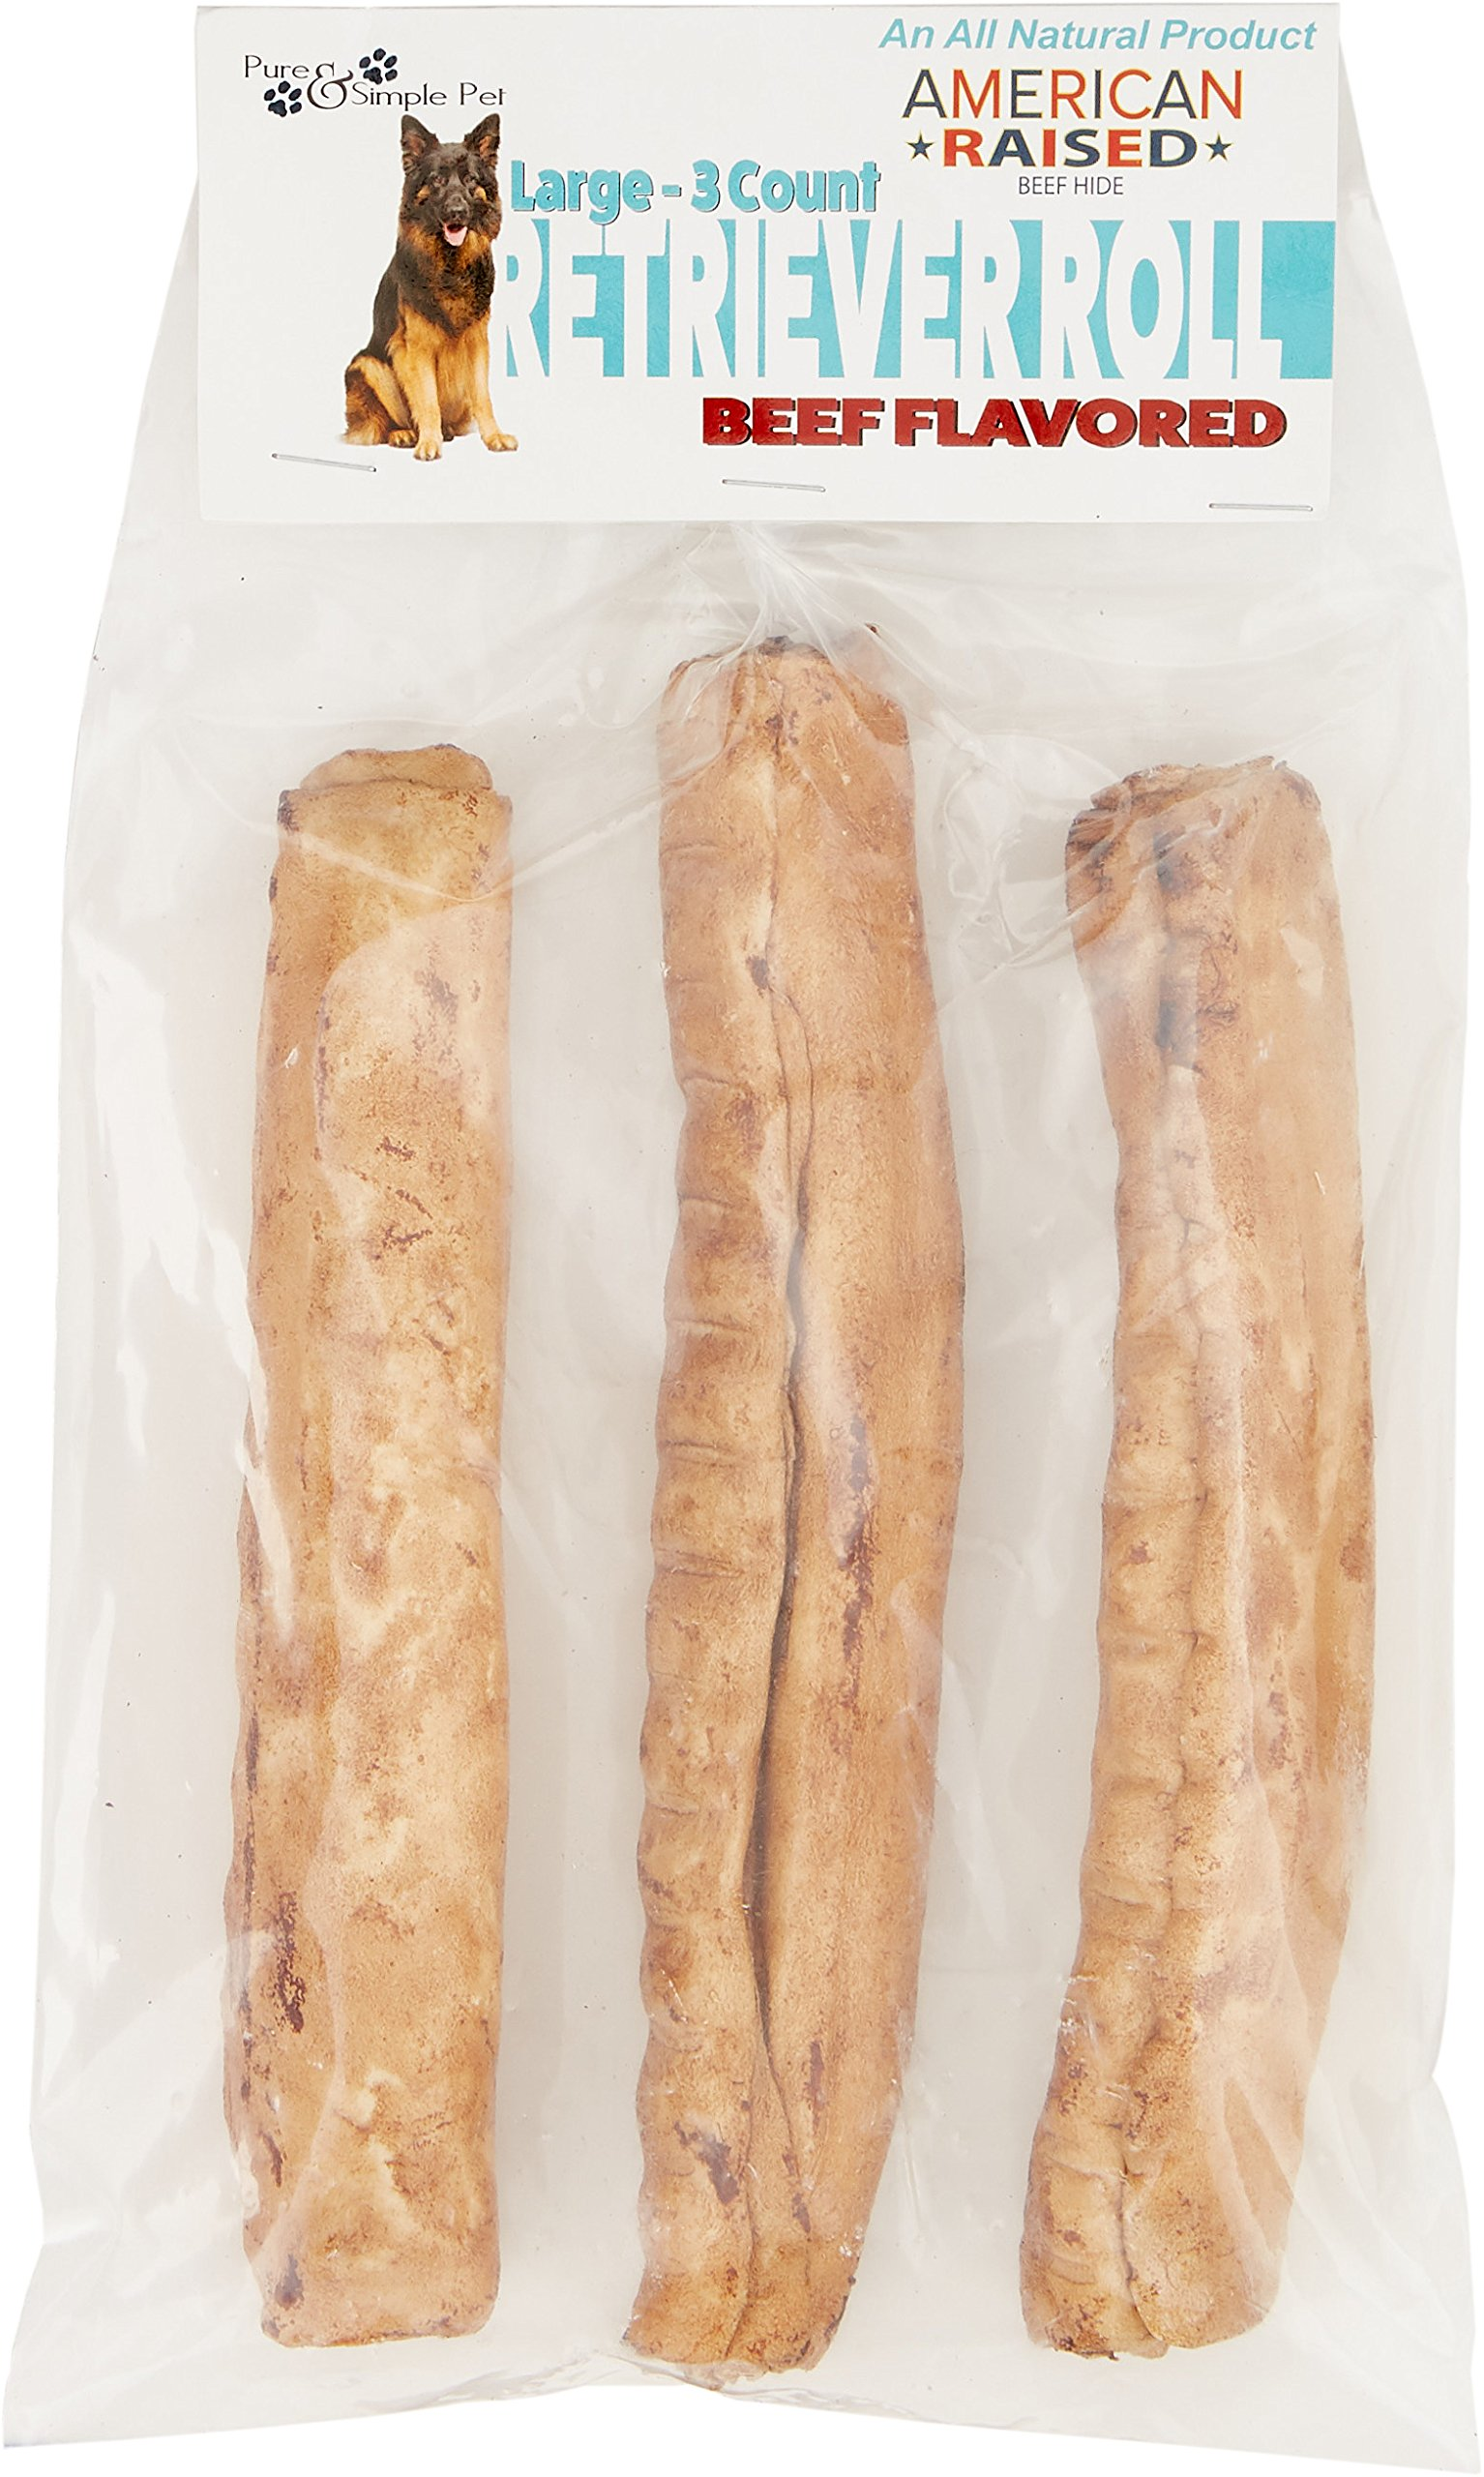 Pure & Simple Pet 6568 8'' Beef Retriever Roll (3 pack), Large